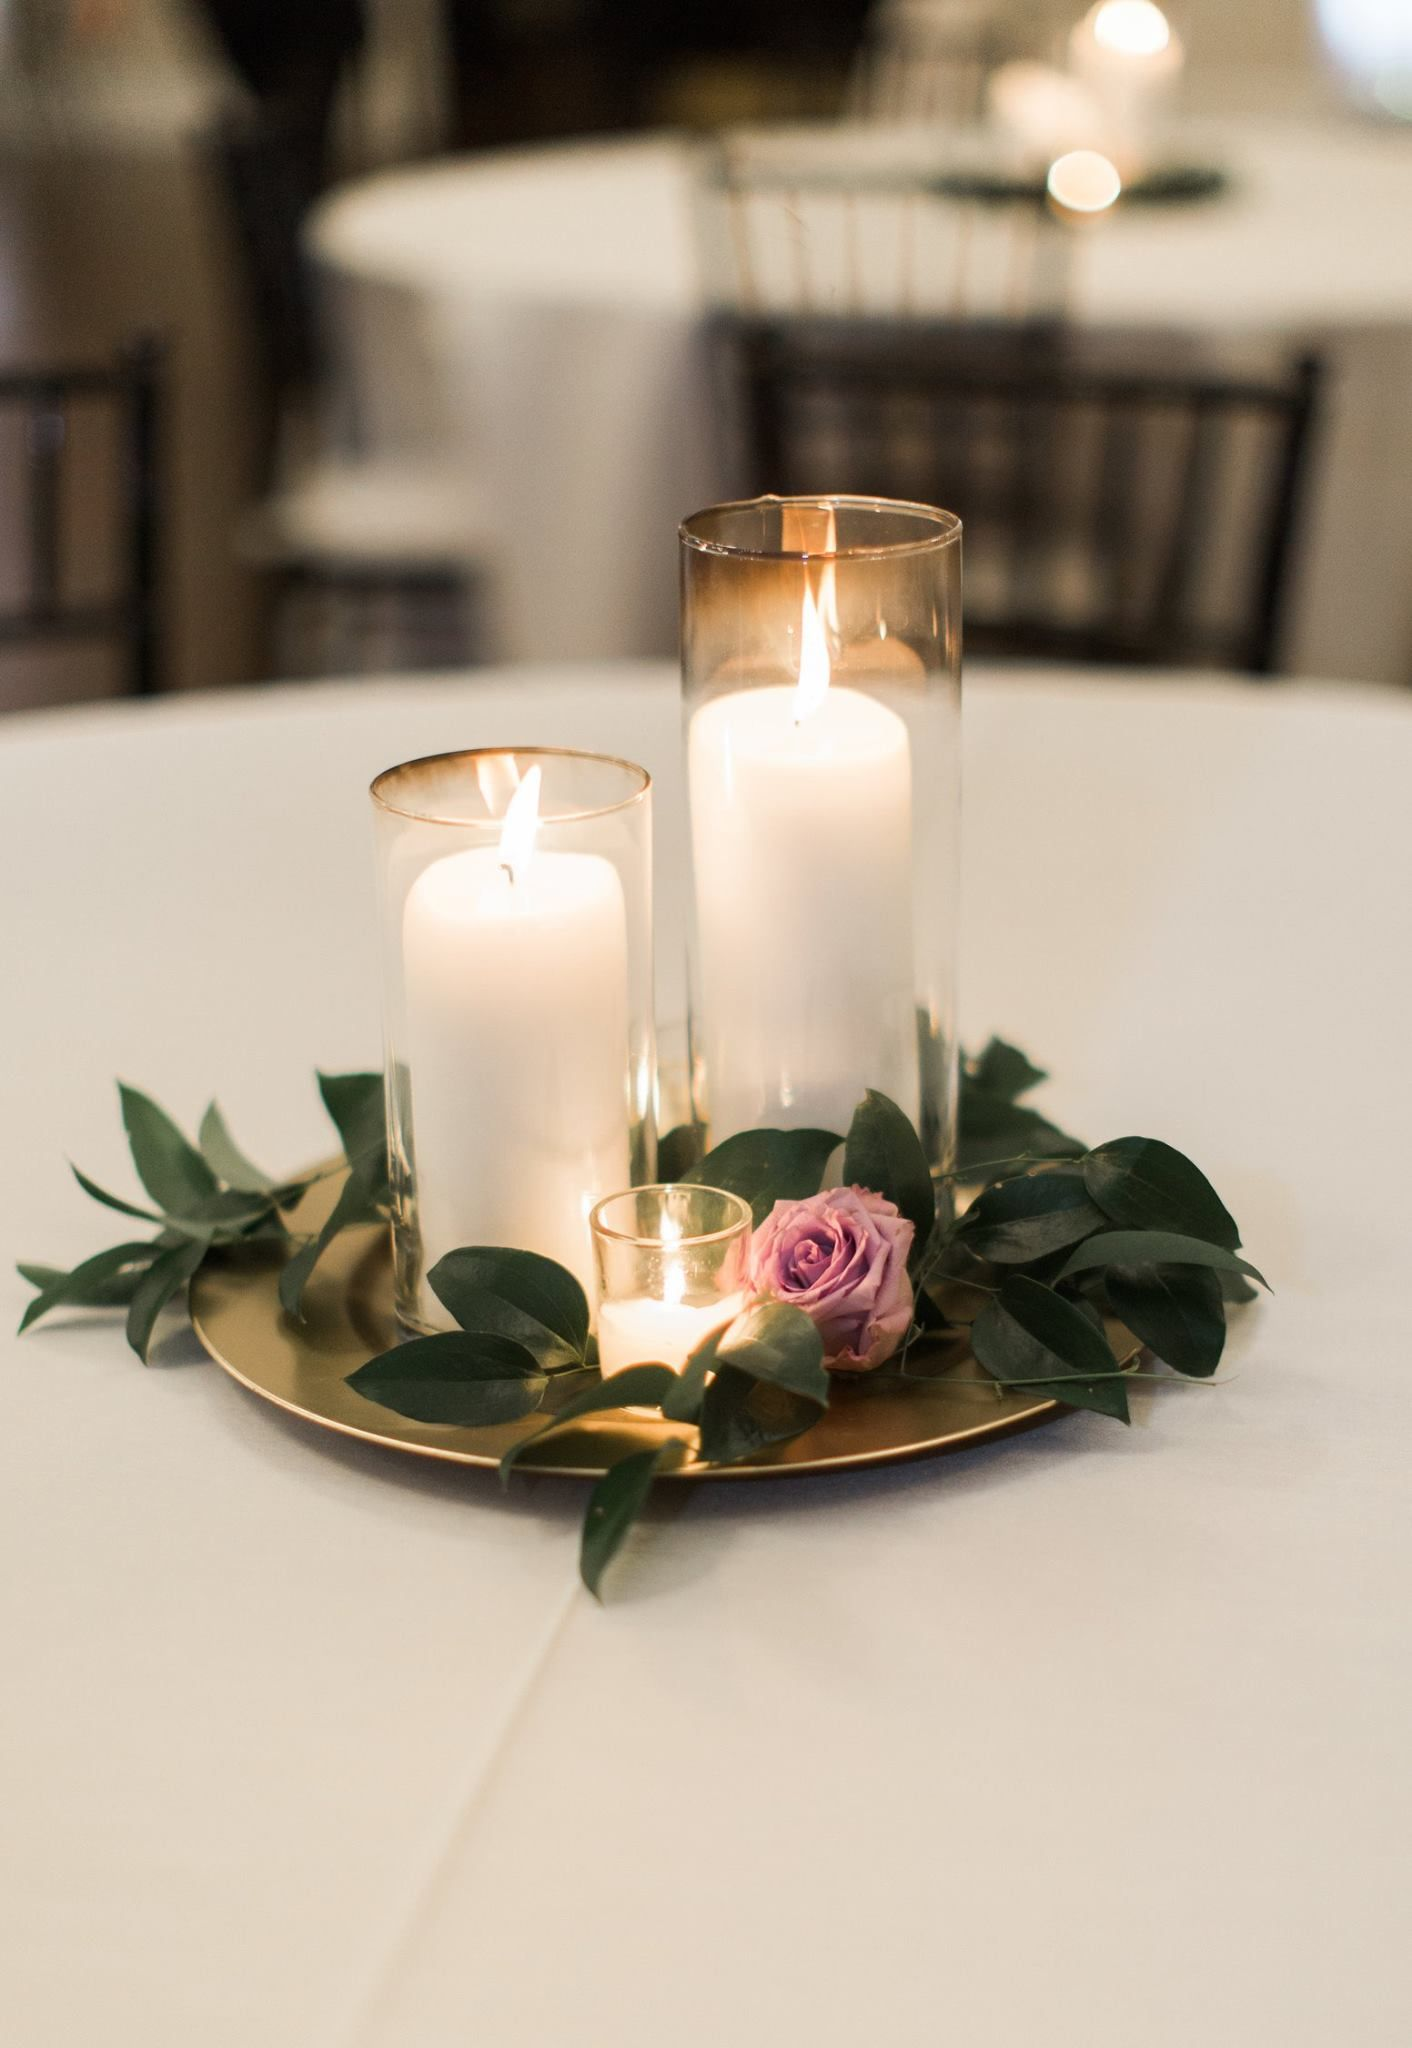 candle wedding centerpiece purple and greenery centerpiece simple wedding centerpiece & candle wedding centerpiece purple and greenery centerpiece simple ...